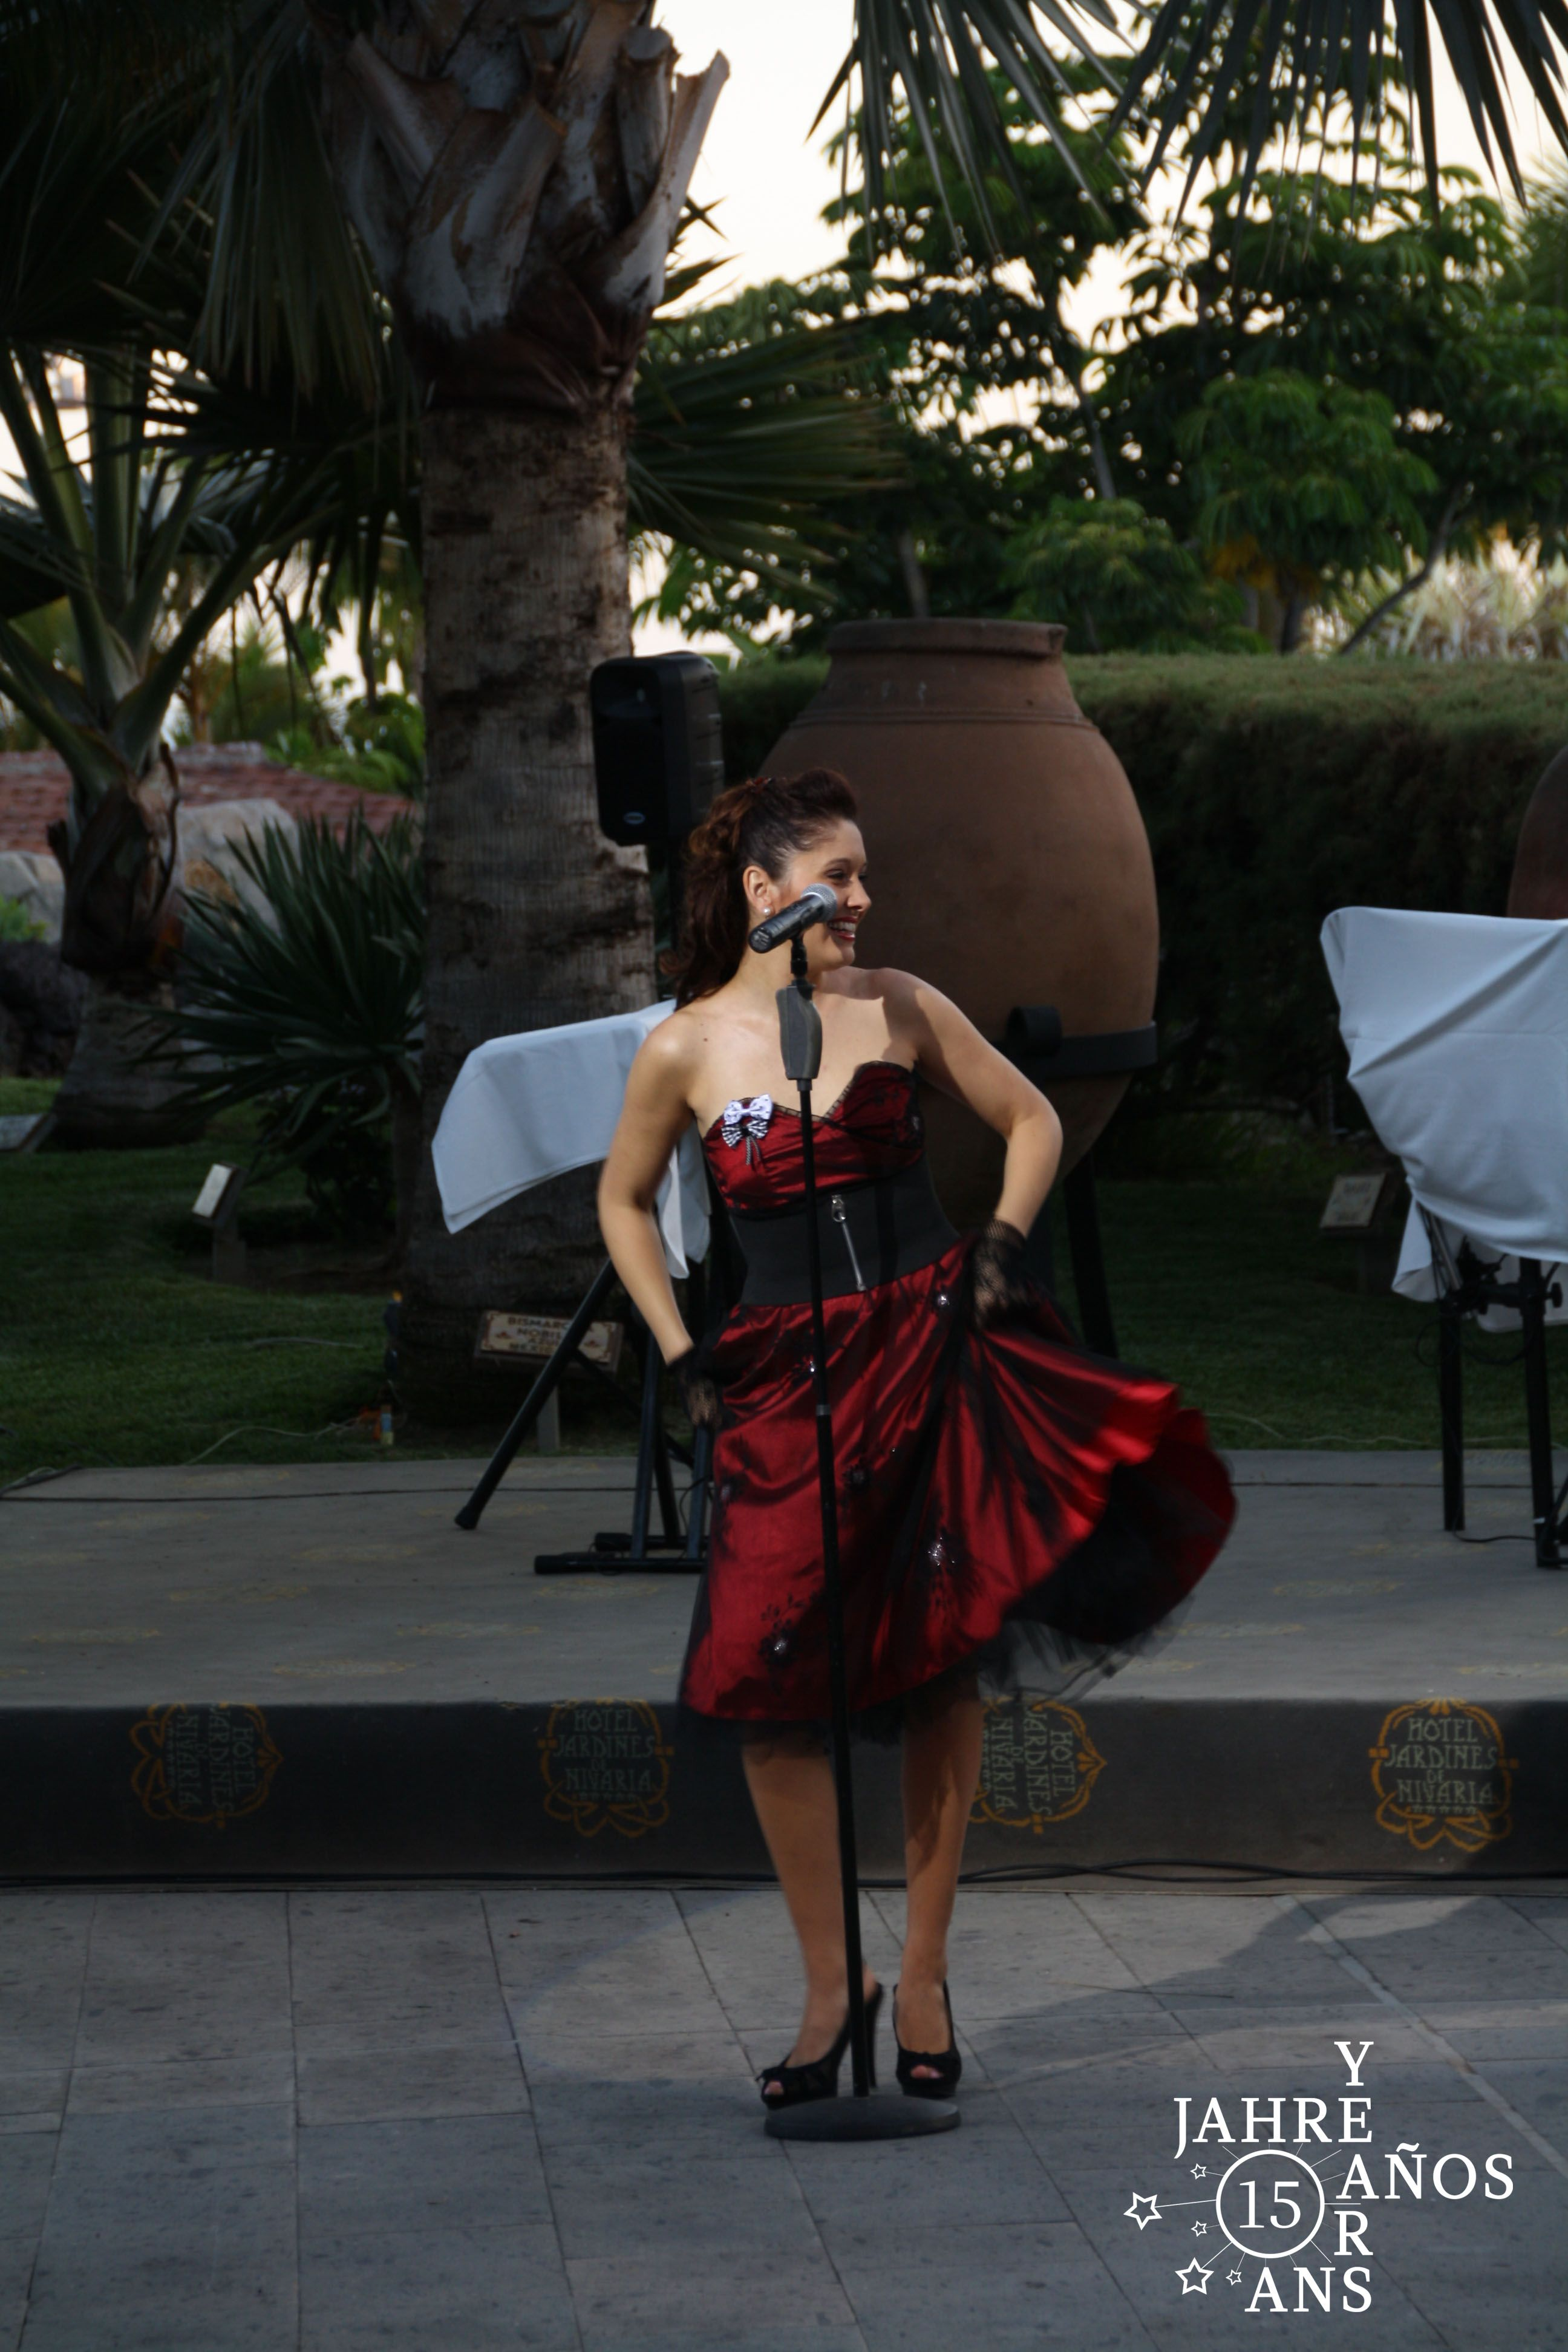 The show for the Anniversary of Jardines de Nivaria   #Tenerife#hotel#Costaadeje#hotellujo